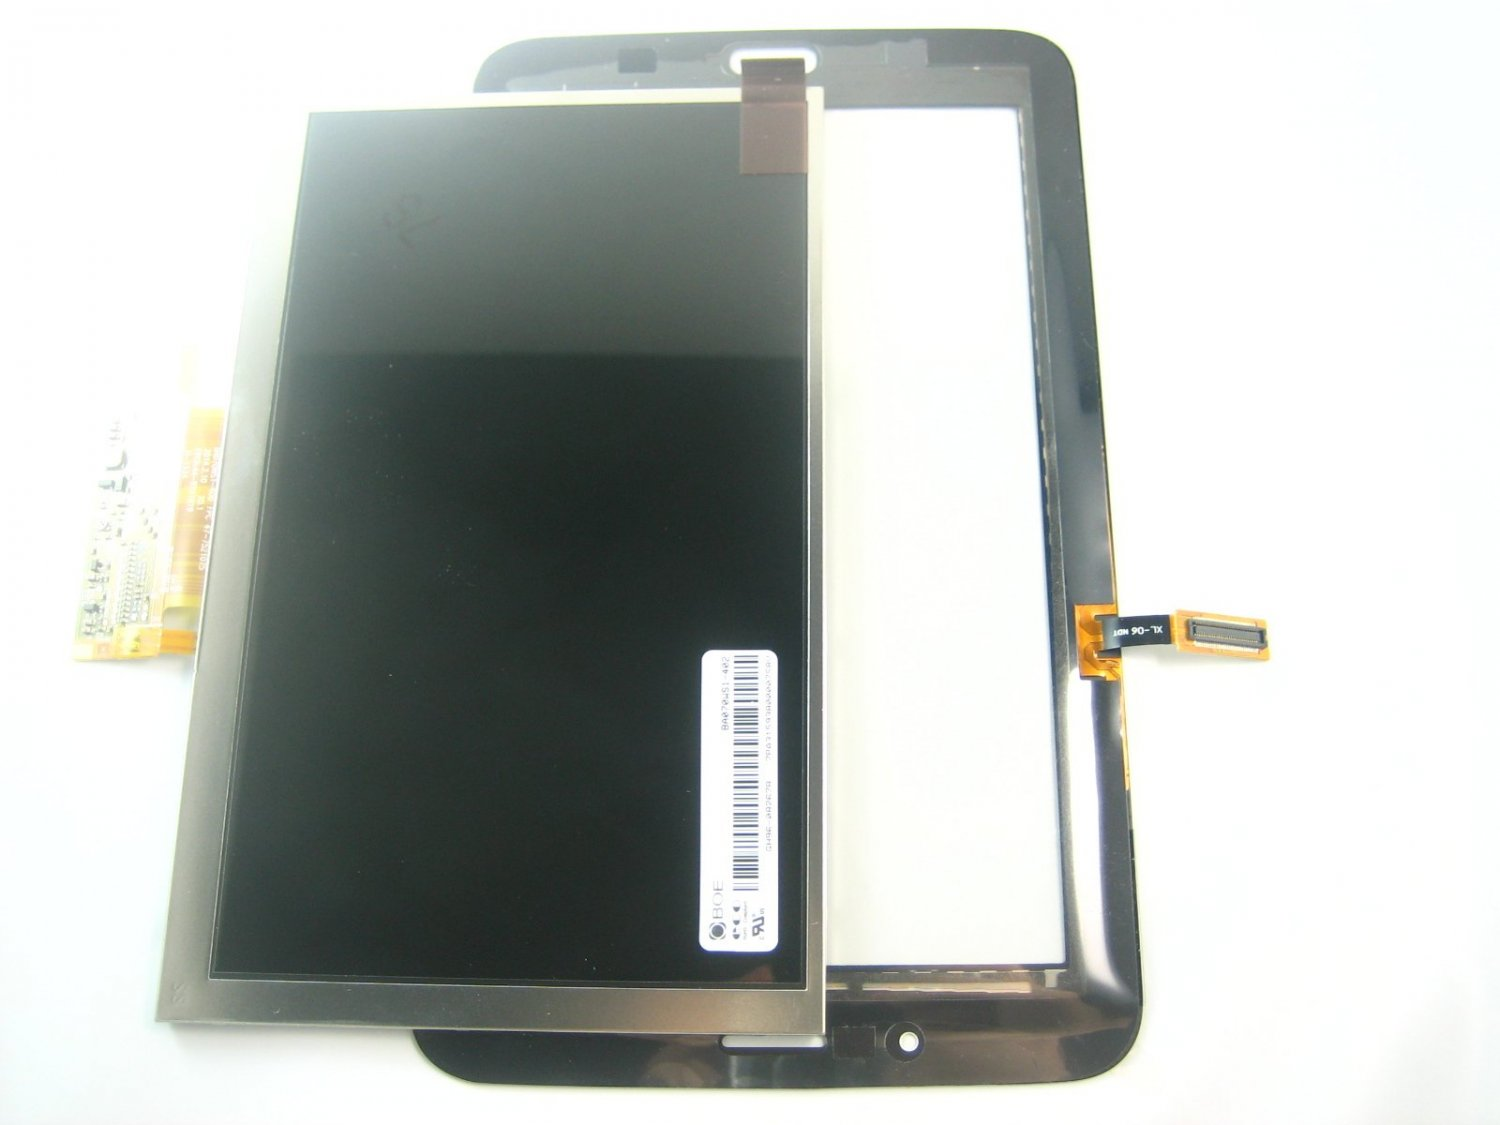 LCD Display+Touch Screen For Samsung Galaxy Tab 3 Lite 7.0 SM-T116~WHITE 05057-MSLTT116nnnnnW